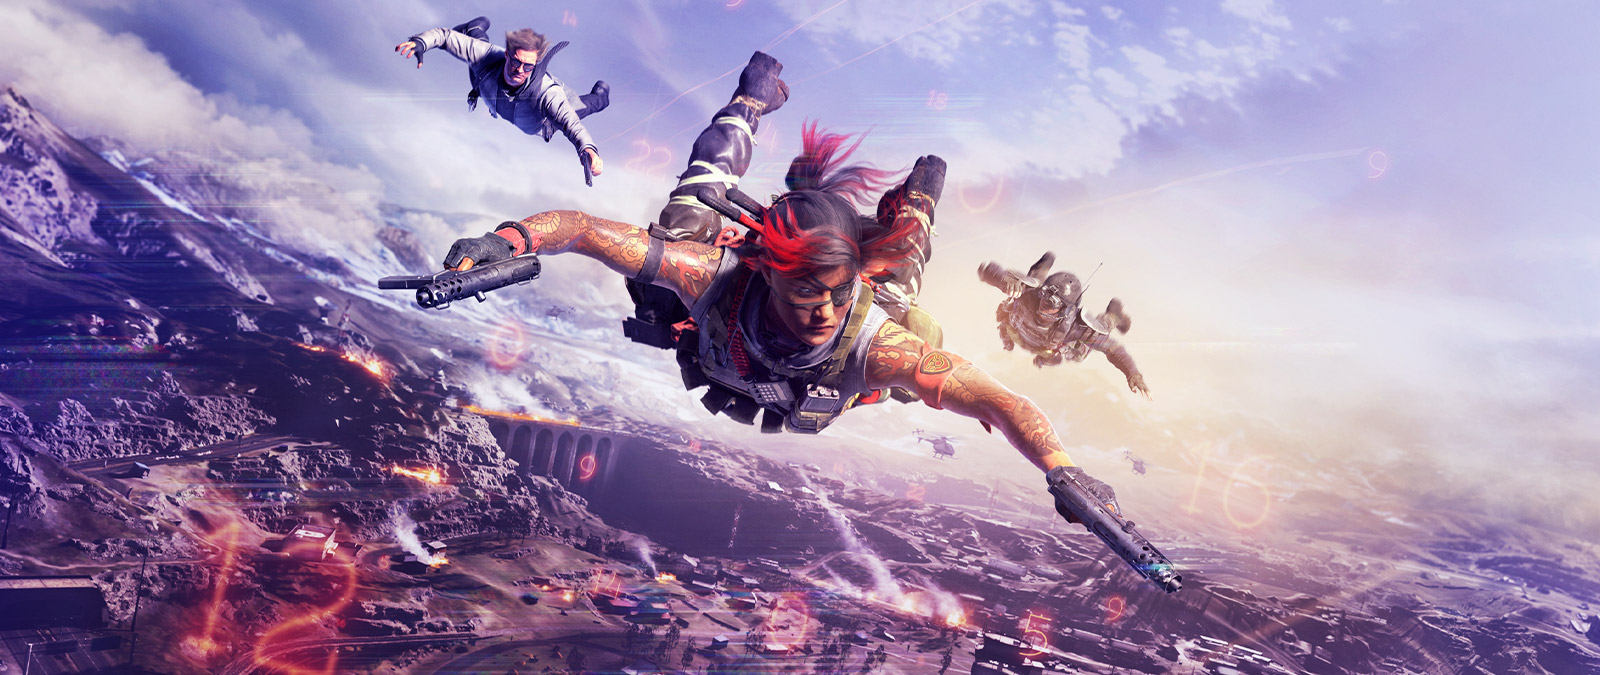 Three characters dropping from the sky with weapons while a fight happens beneath them and there are red numbers floating around them